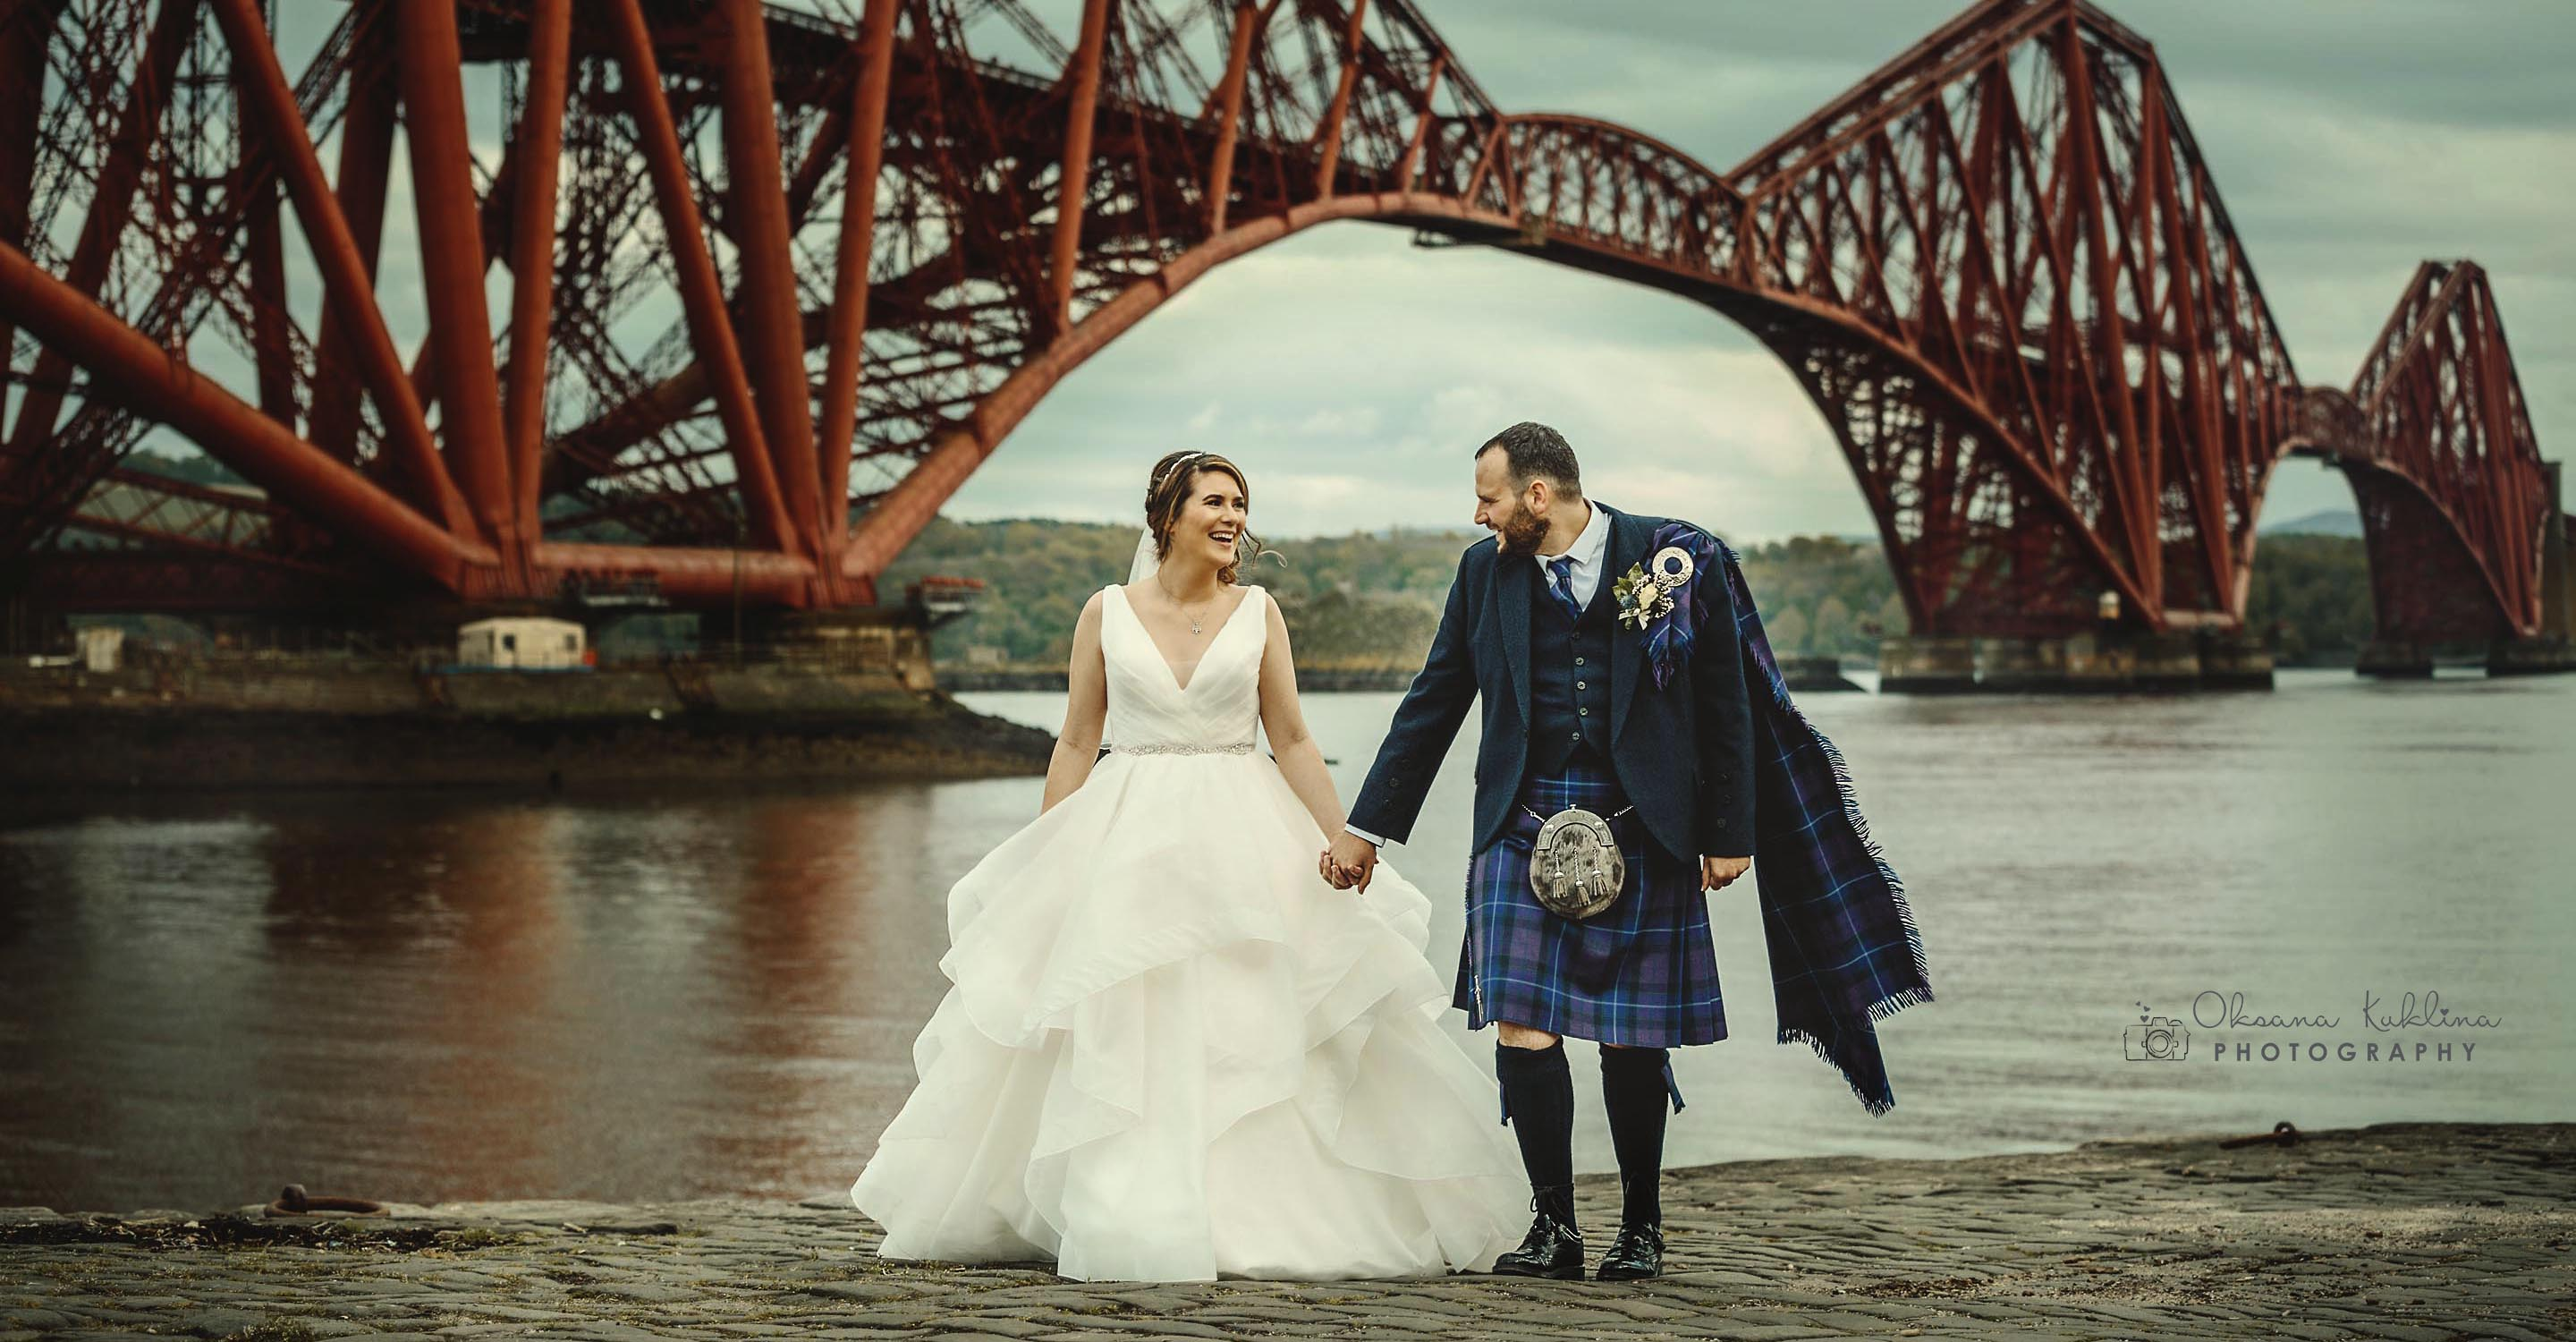 Queensferry wedding photographer - The Forth Bridge Wedding Photo - Scotland wedding photography